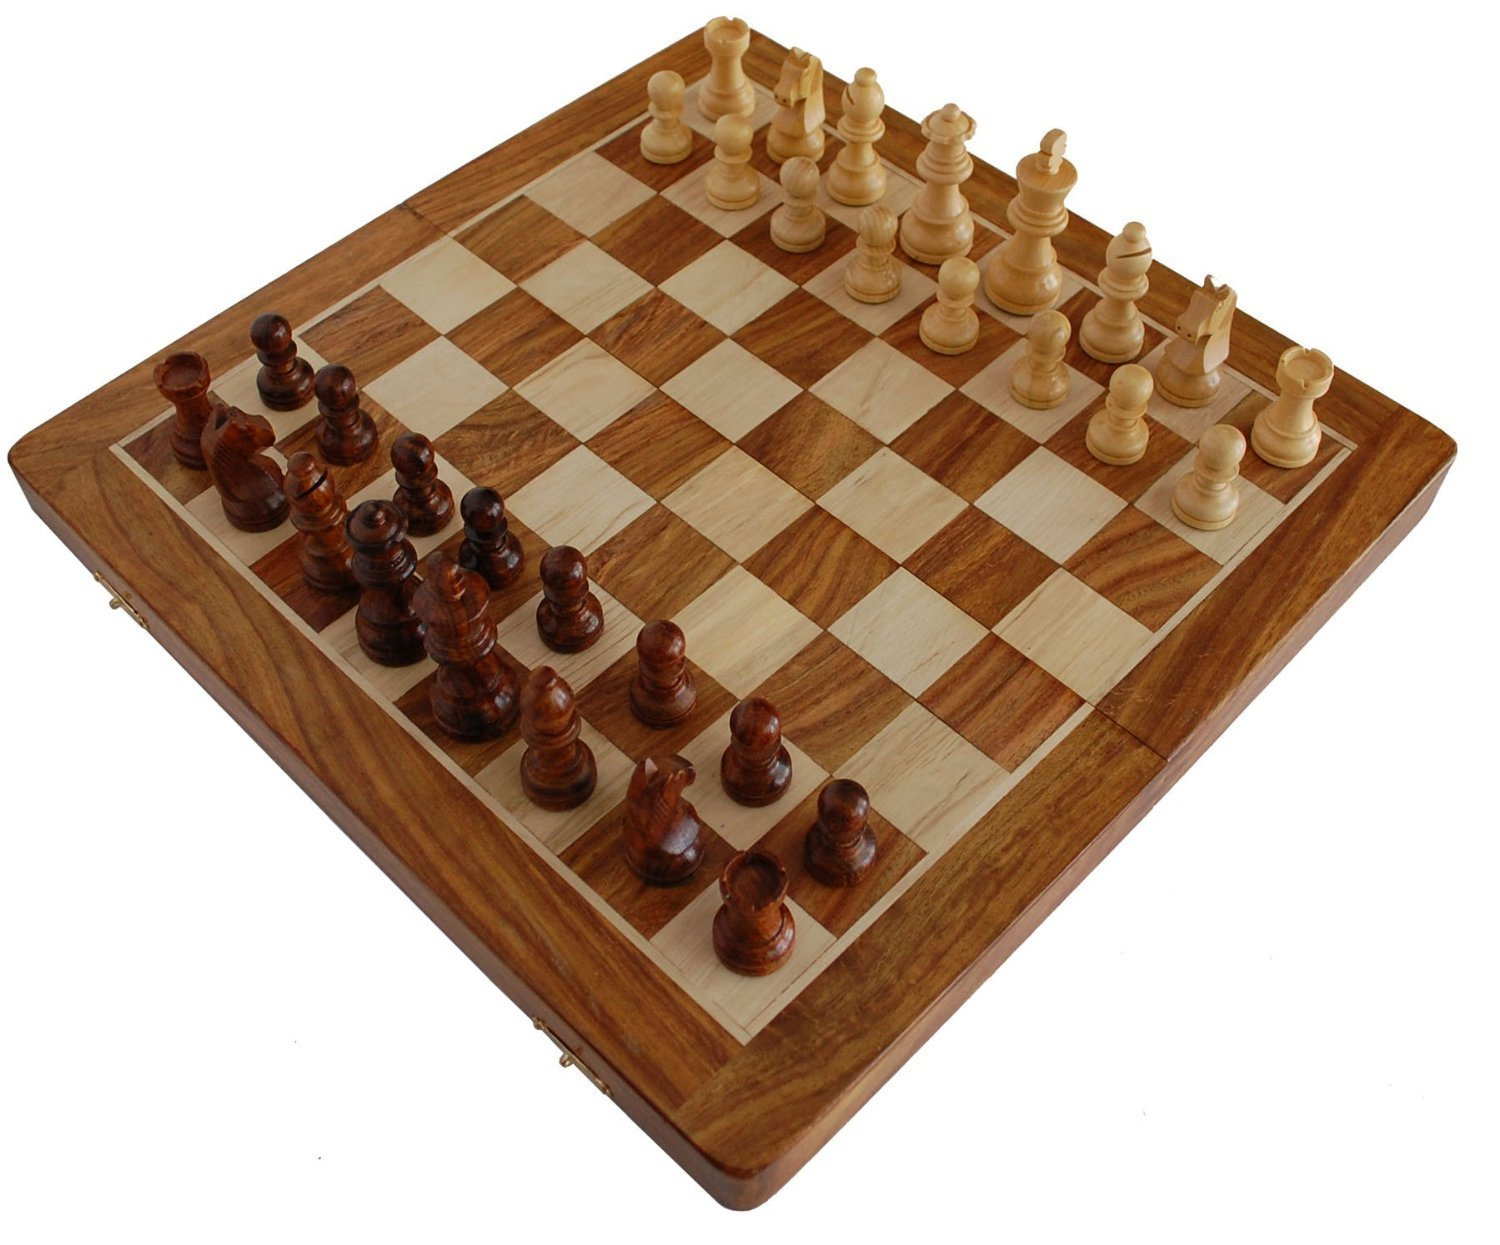 Best Chess Set Sale - BKRAFT4U 10 x 10'' Rosewood Travel Chess Game Board - Premium Handmade Wooden Foldable Magnetic Chess Game Board with Storage Slots, 10 inch. Gifts from India. by BKRAFT4U (Image #3)